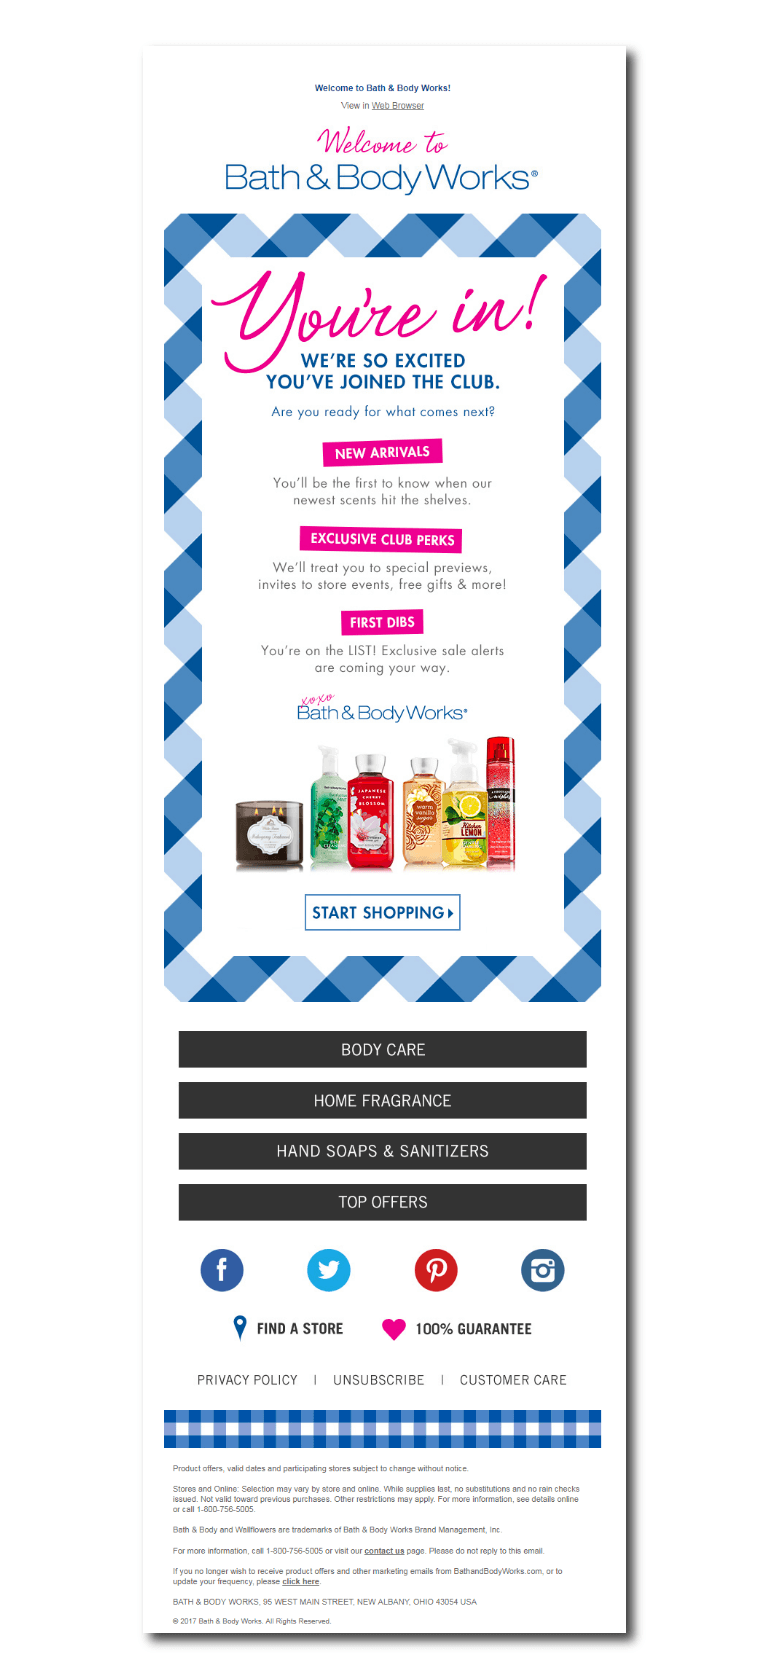 Example of a welcome email from Bath and Body Works